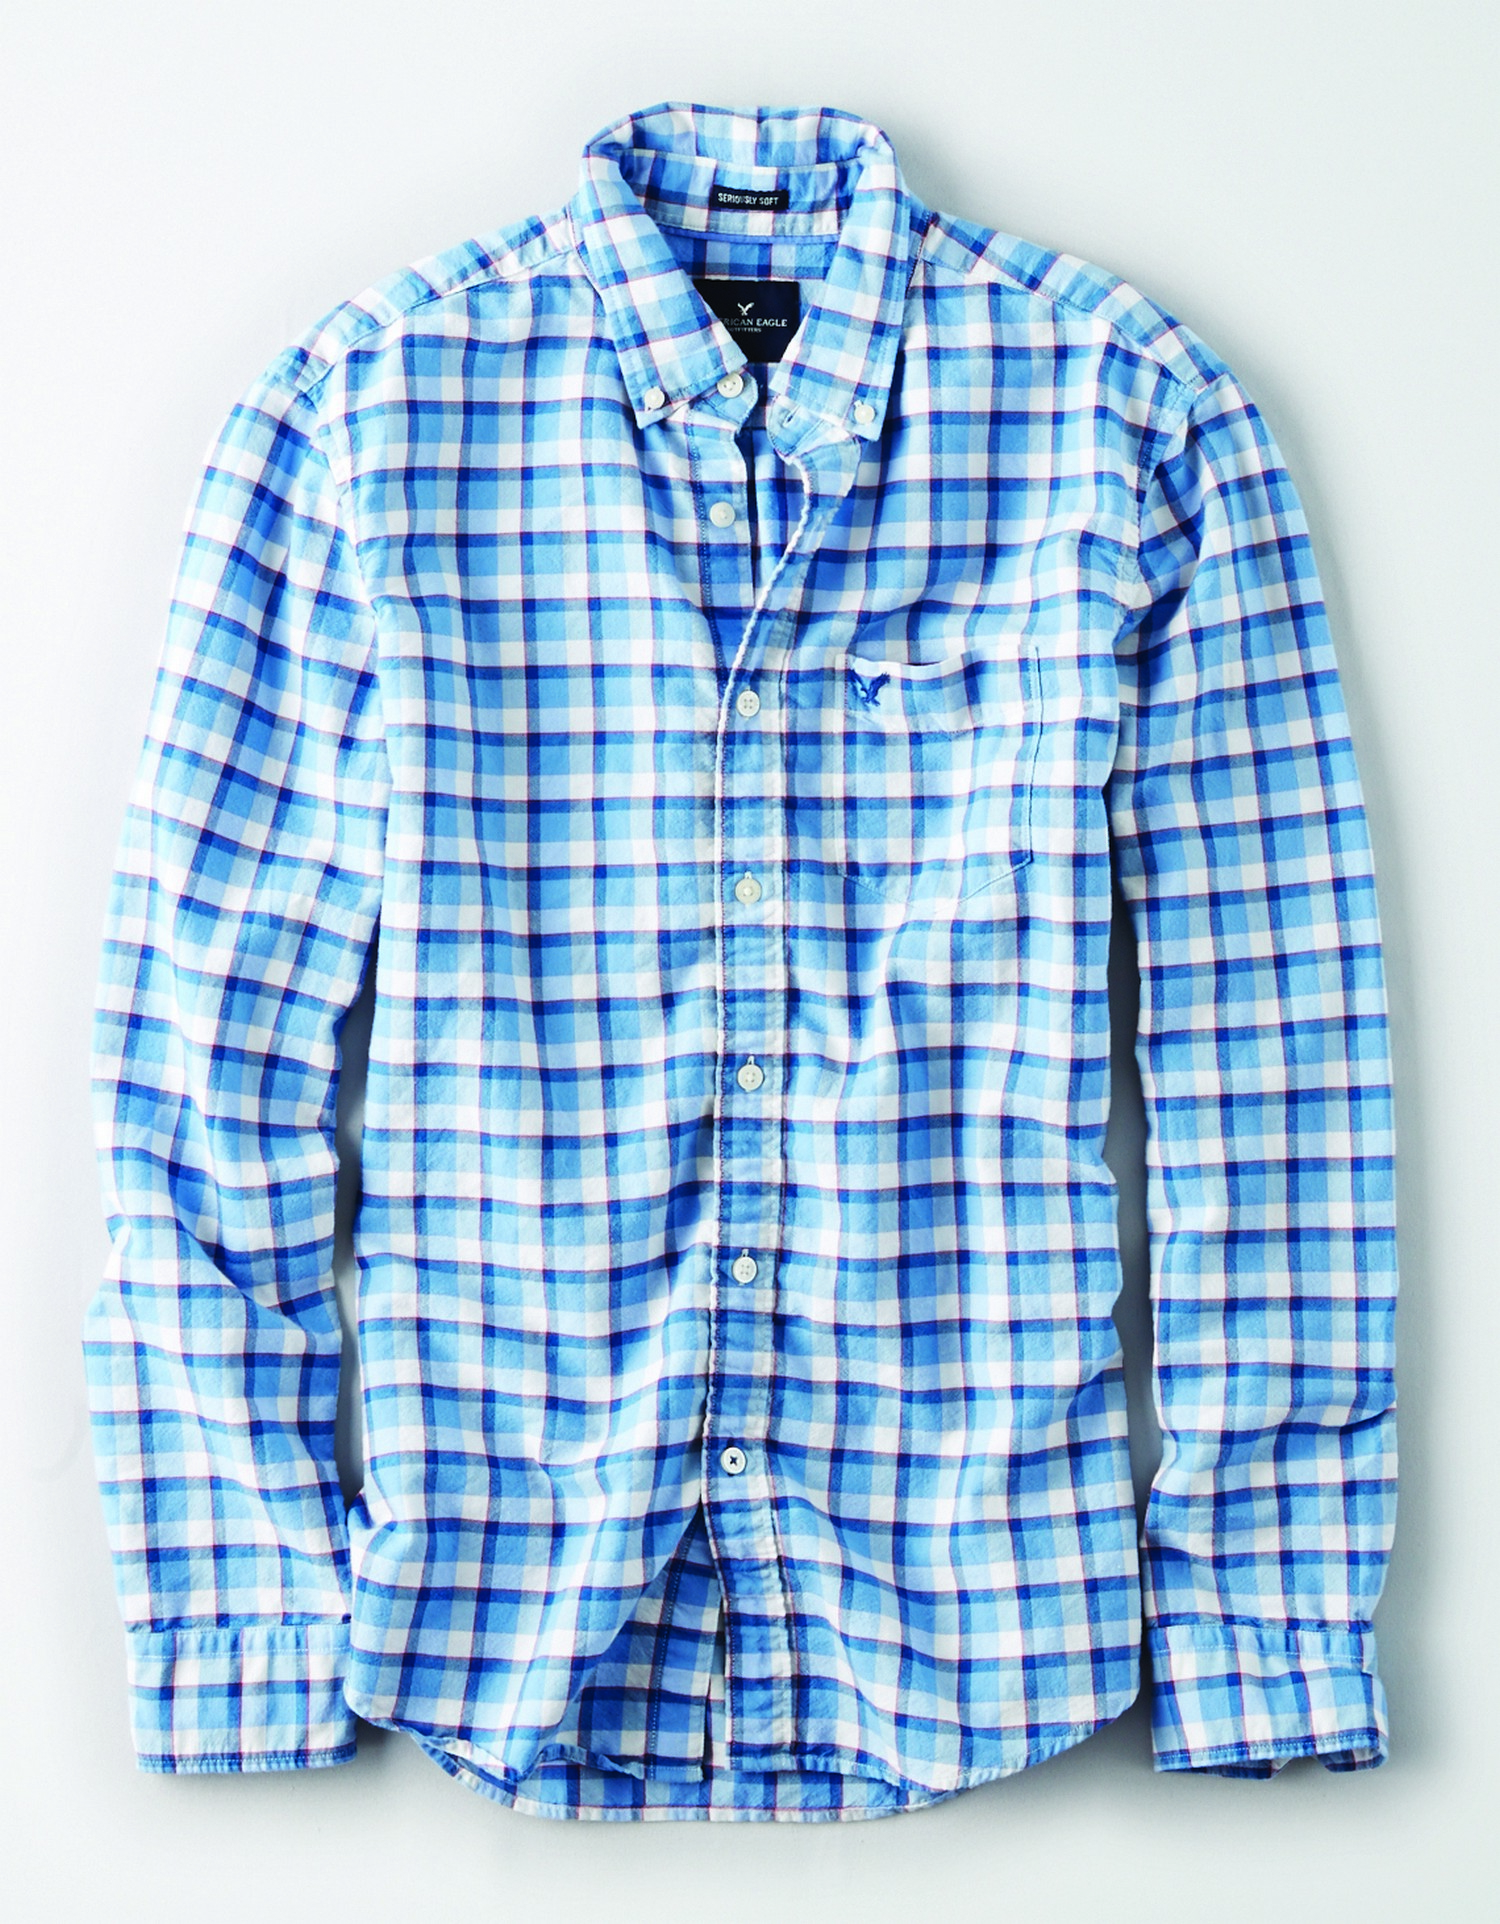 AE - INTL - Apparel - M - CF Plaid Shirt - Light blue and white plaid w/thin red stripe detail - dark blue embroidered eagle on left chest pocket KS *Tracked